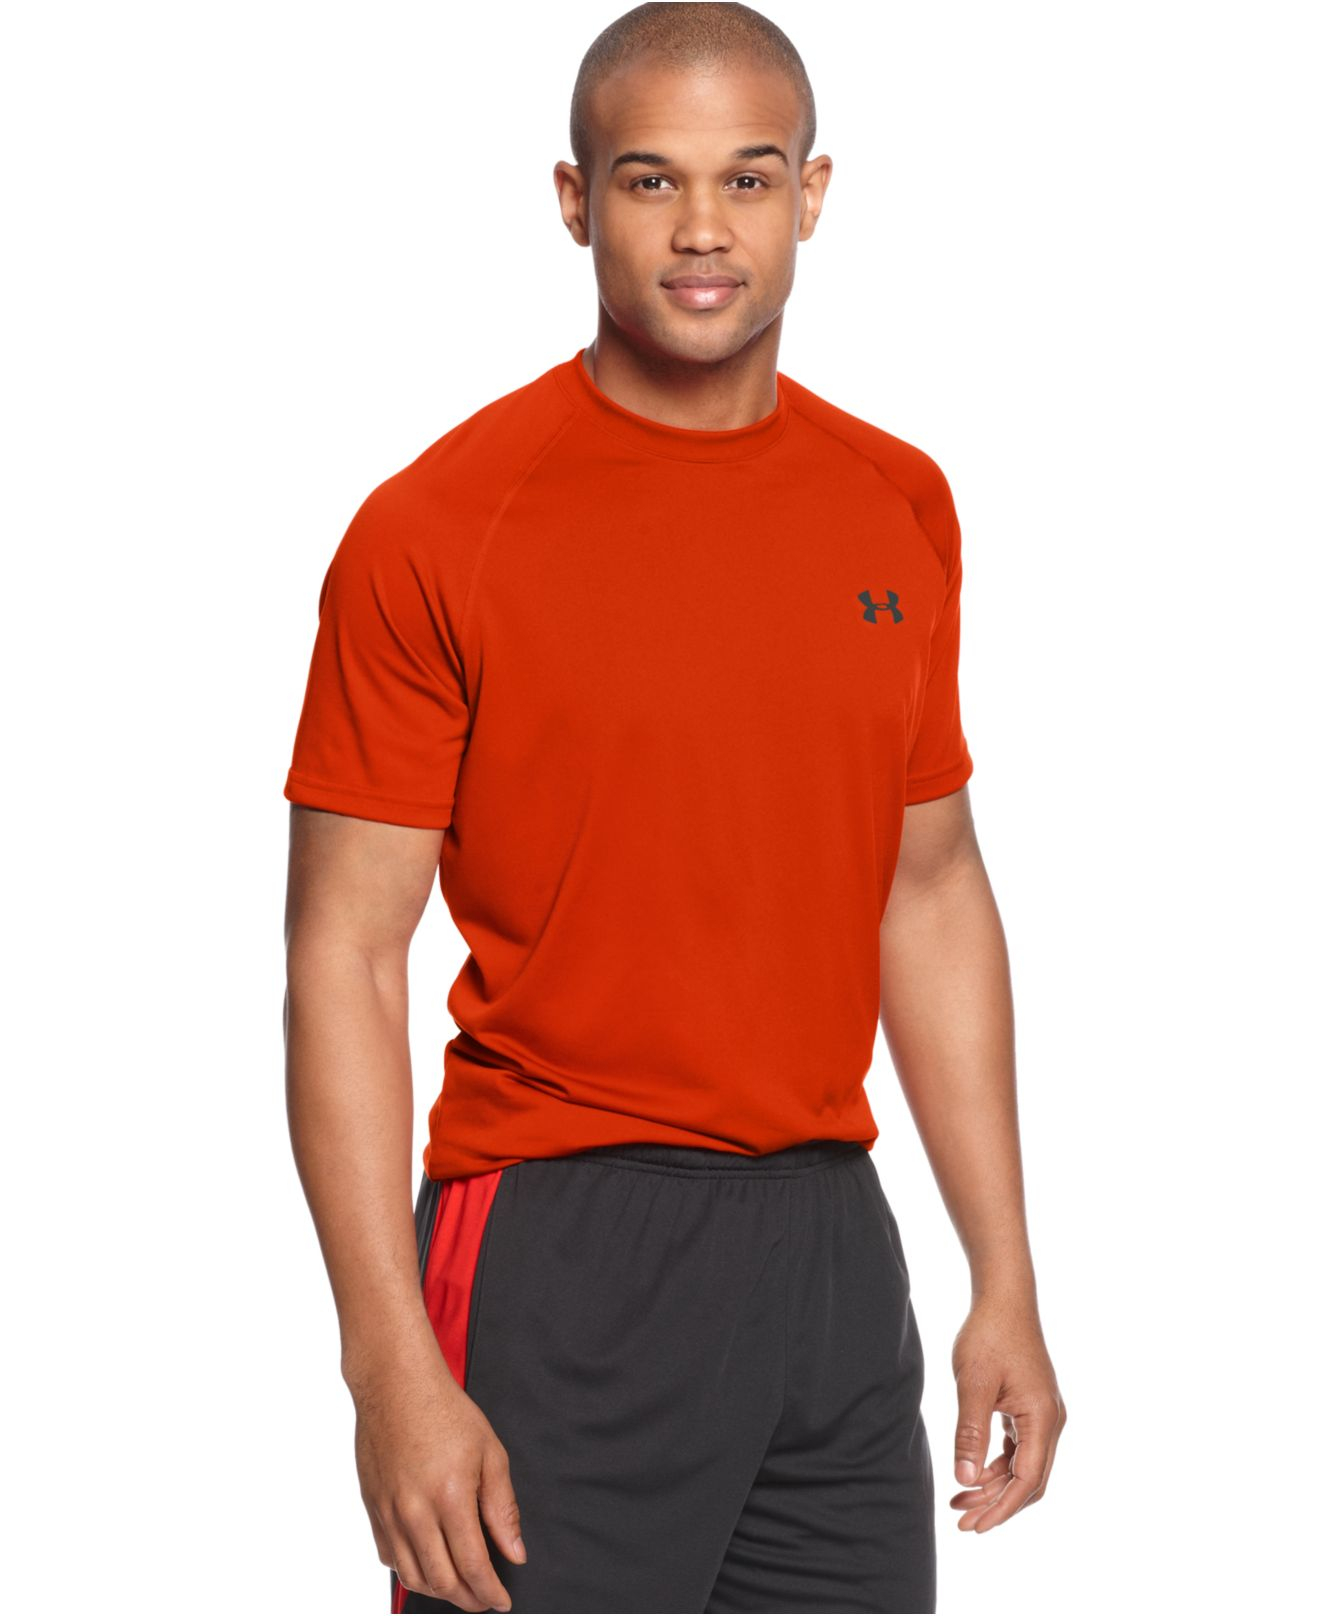 Lyst under armour tech short sleeve t shirt in orange for Under armour men s tech short sleeve t shirt